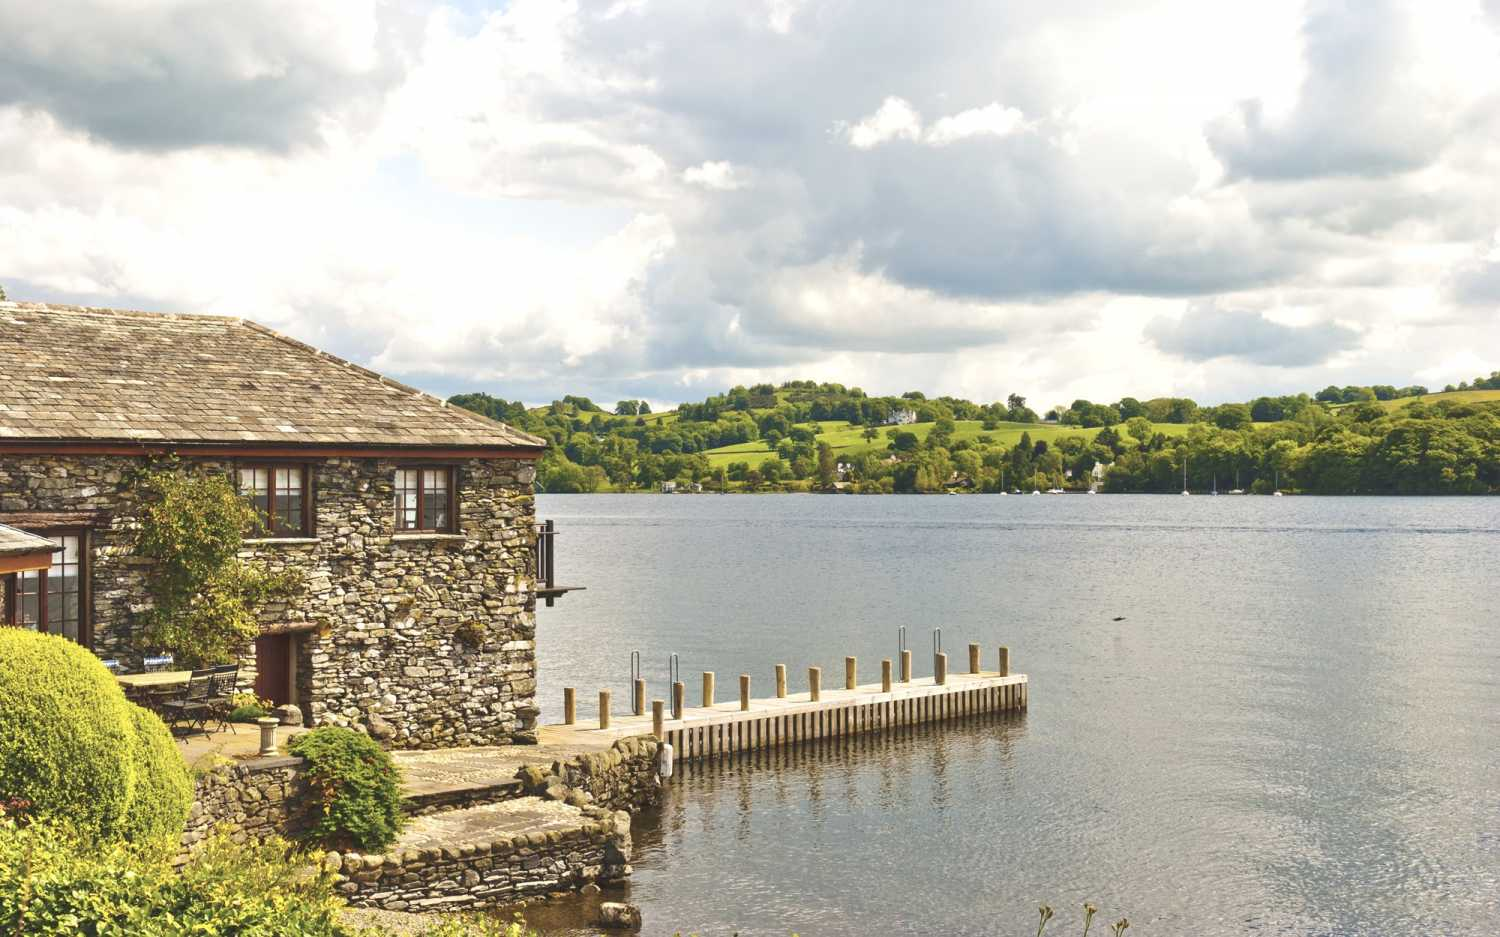 Picture of Stelling Minnis - Last Minute Cottages in Stelling Minnis